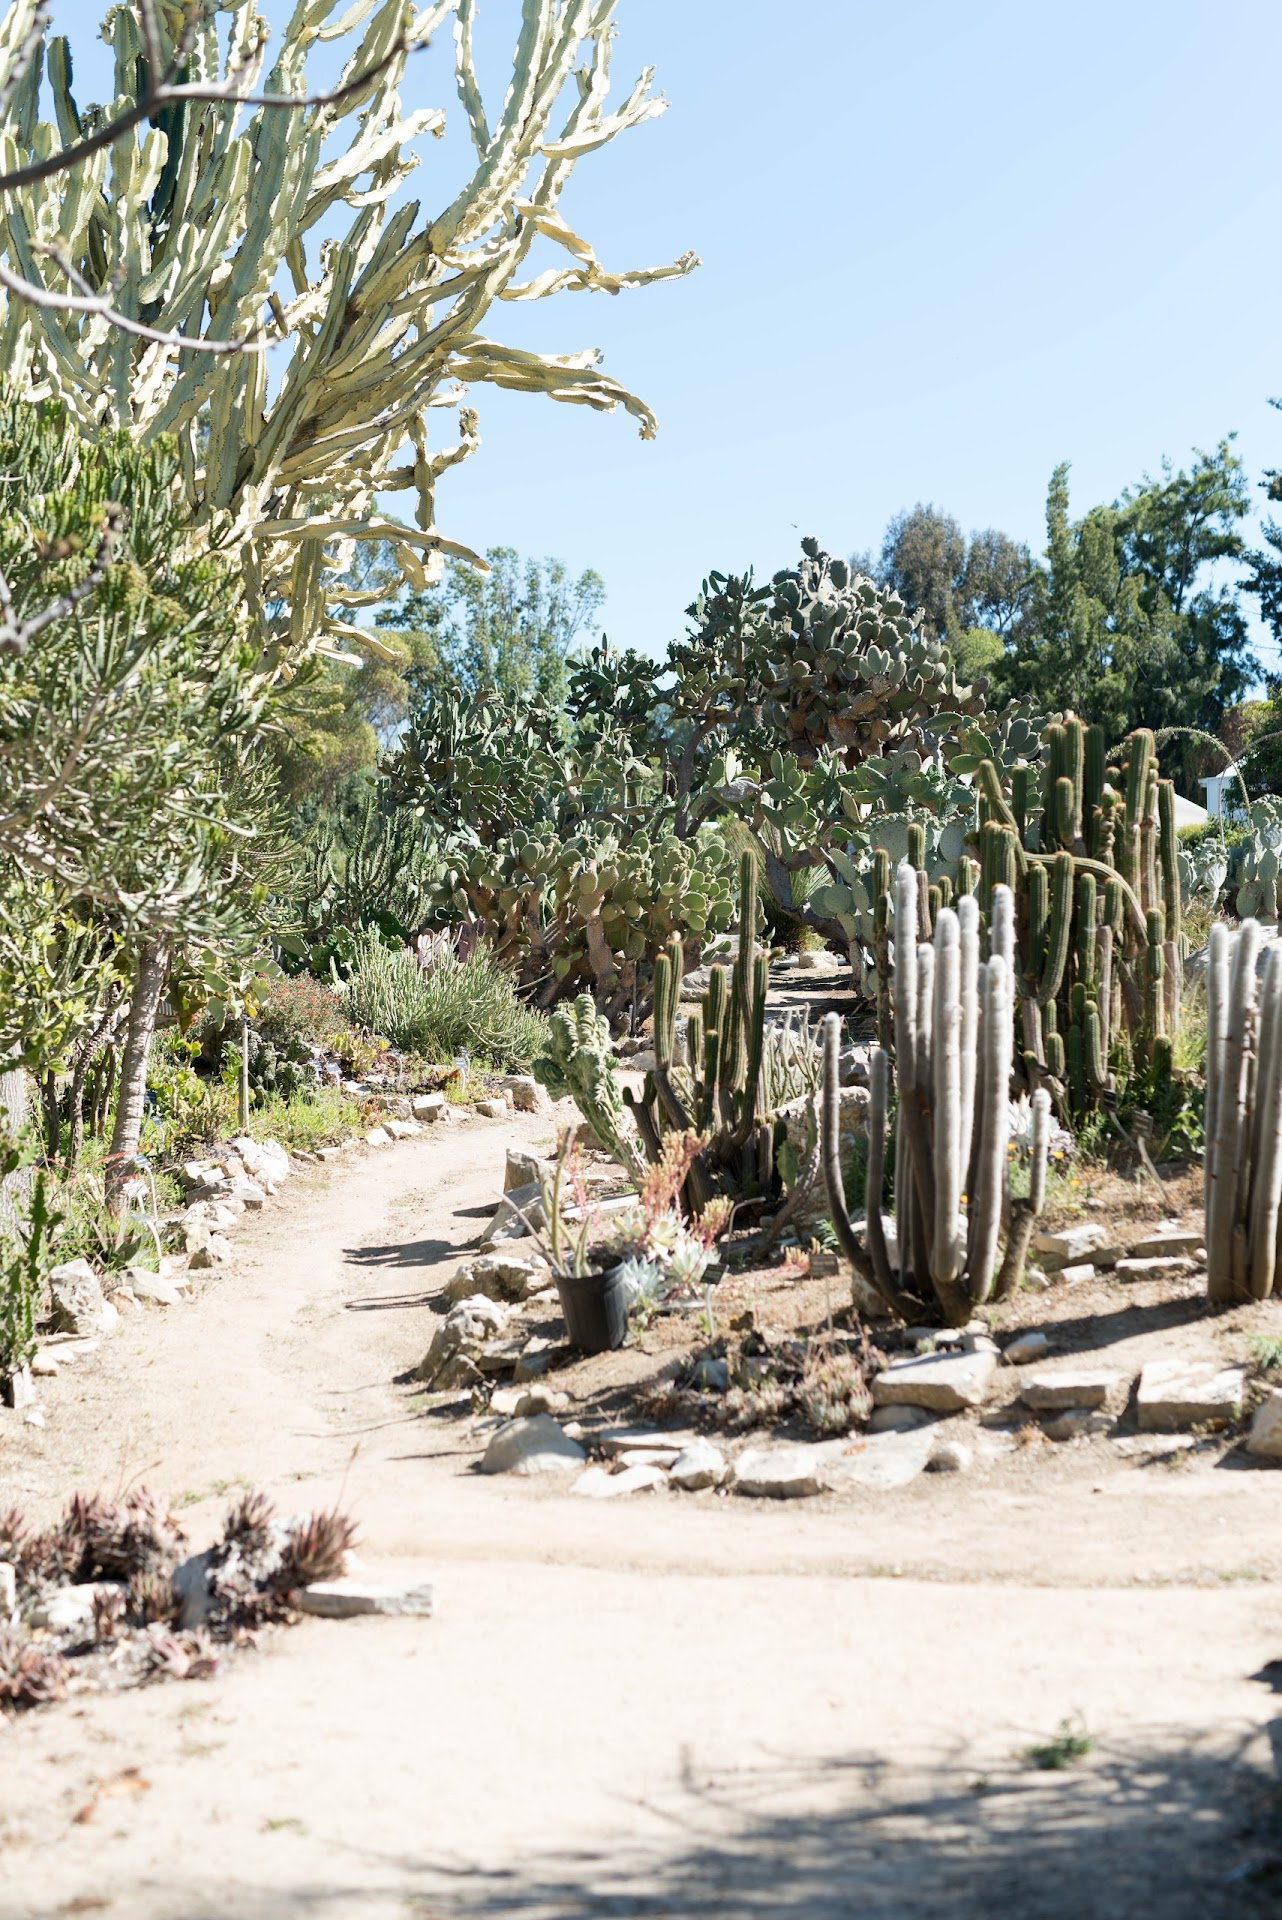 south coast botanic garden, things to do in torrance, southern california, cactus garden, desert